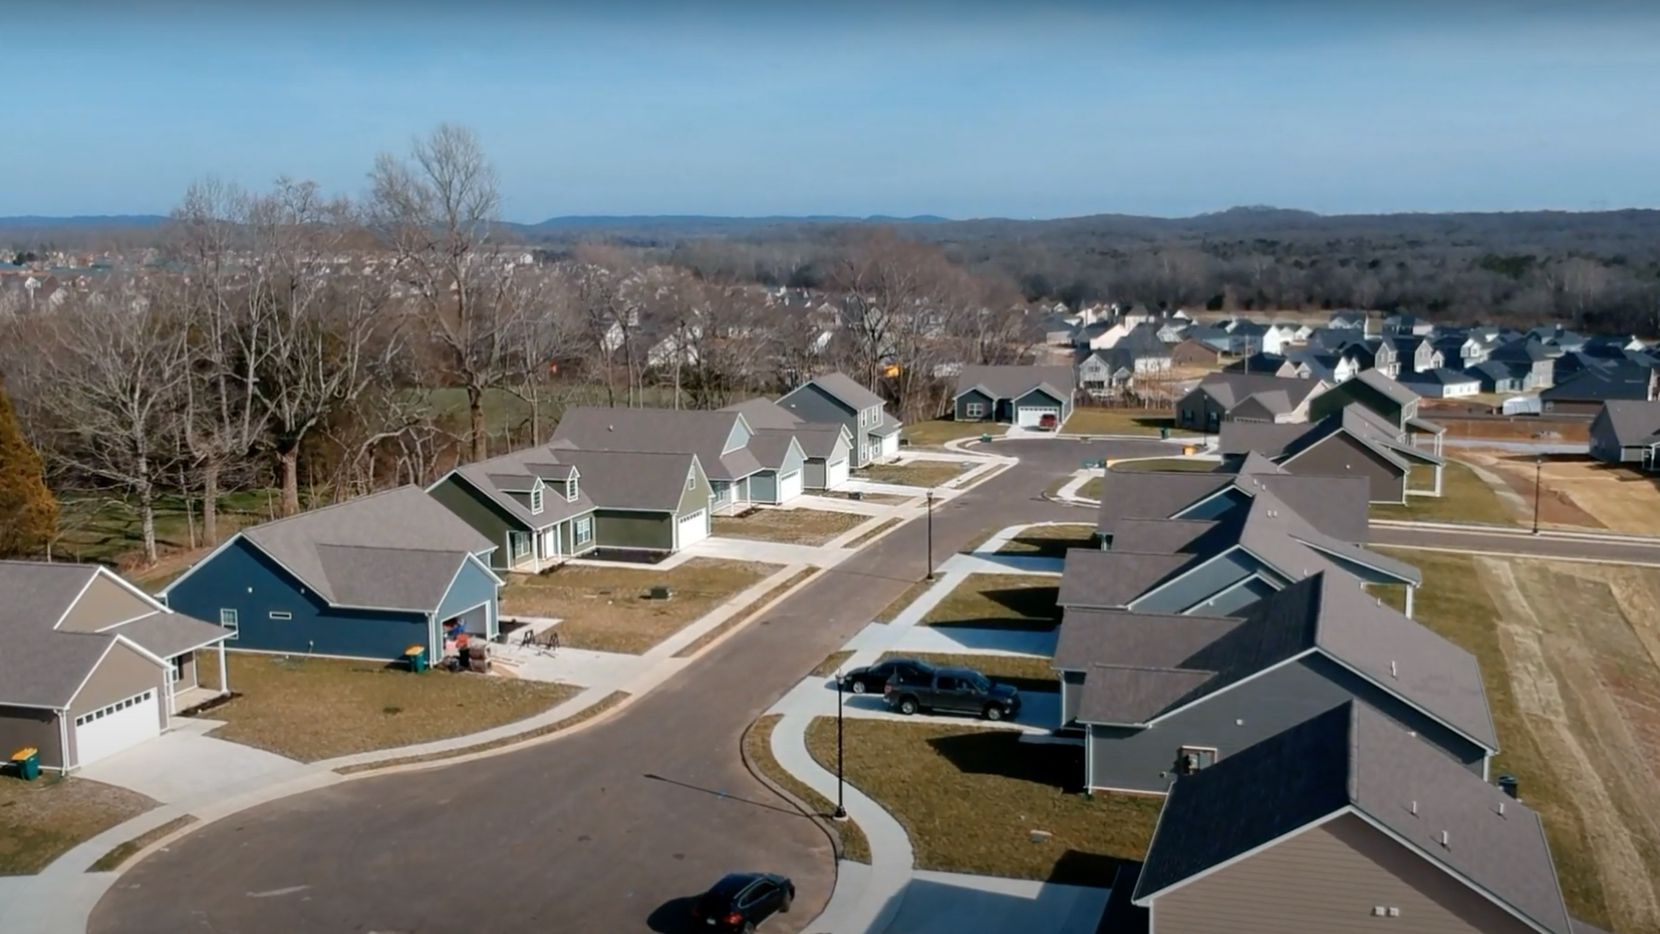 Tennessee-based Kinloch Partners is one of the builders expanding in North Texas with single-family rental home communities.